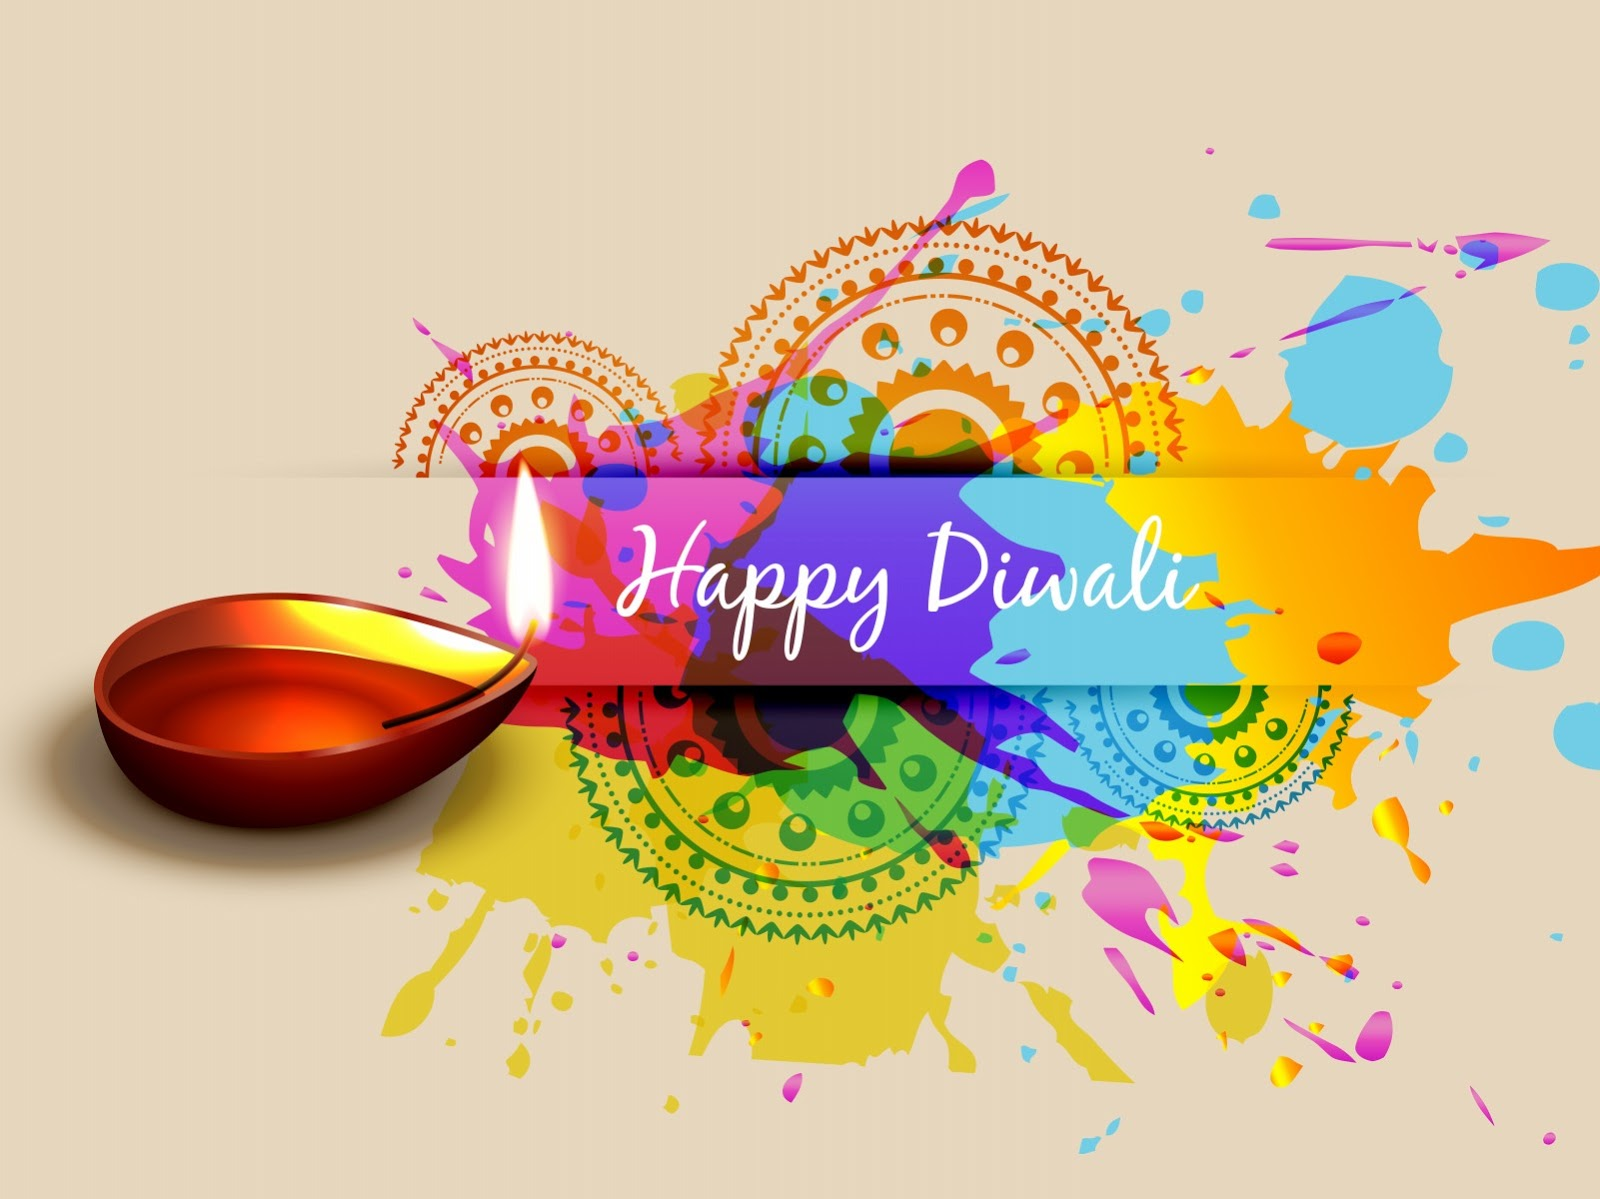 Top 15 diwali greeting messages for wishing in advance top 15 top 15 diwali greeting messages for wishing in advance top 15 diwali greeting messages in hindi kristyandbryce Choice Image